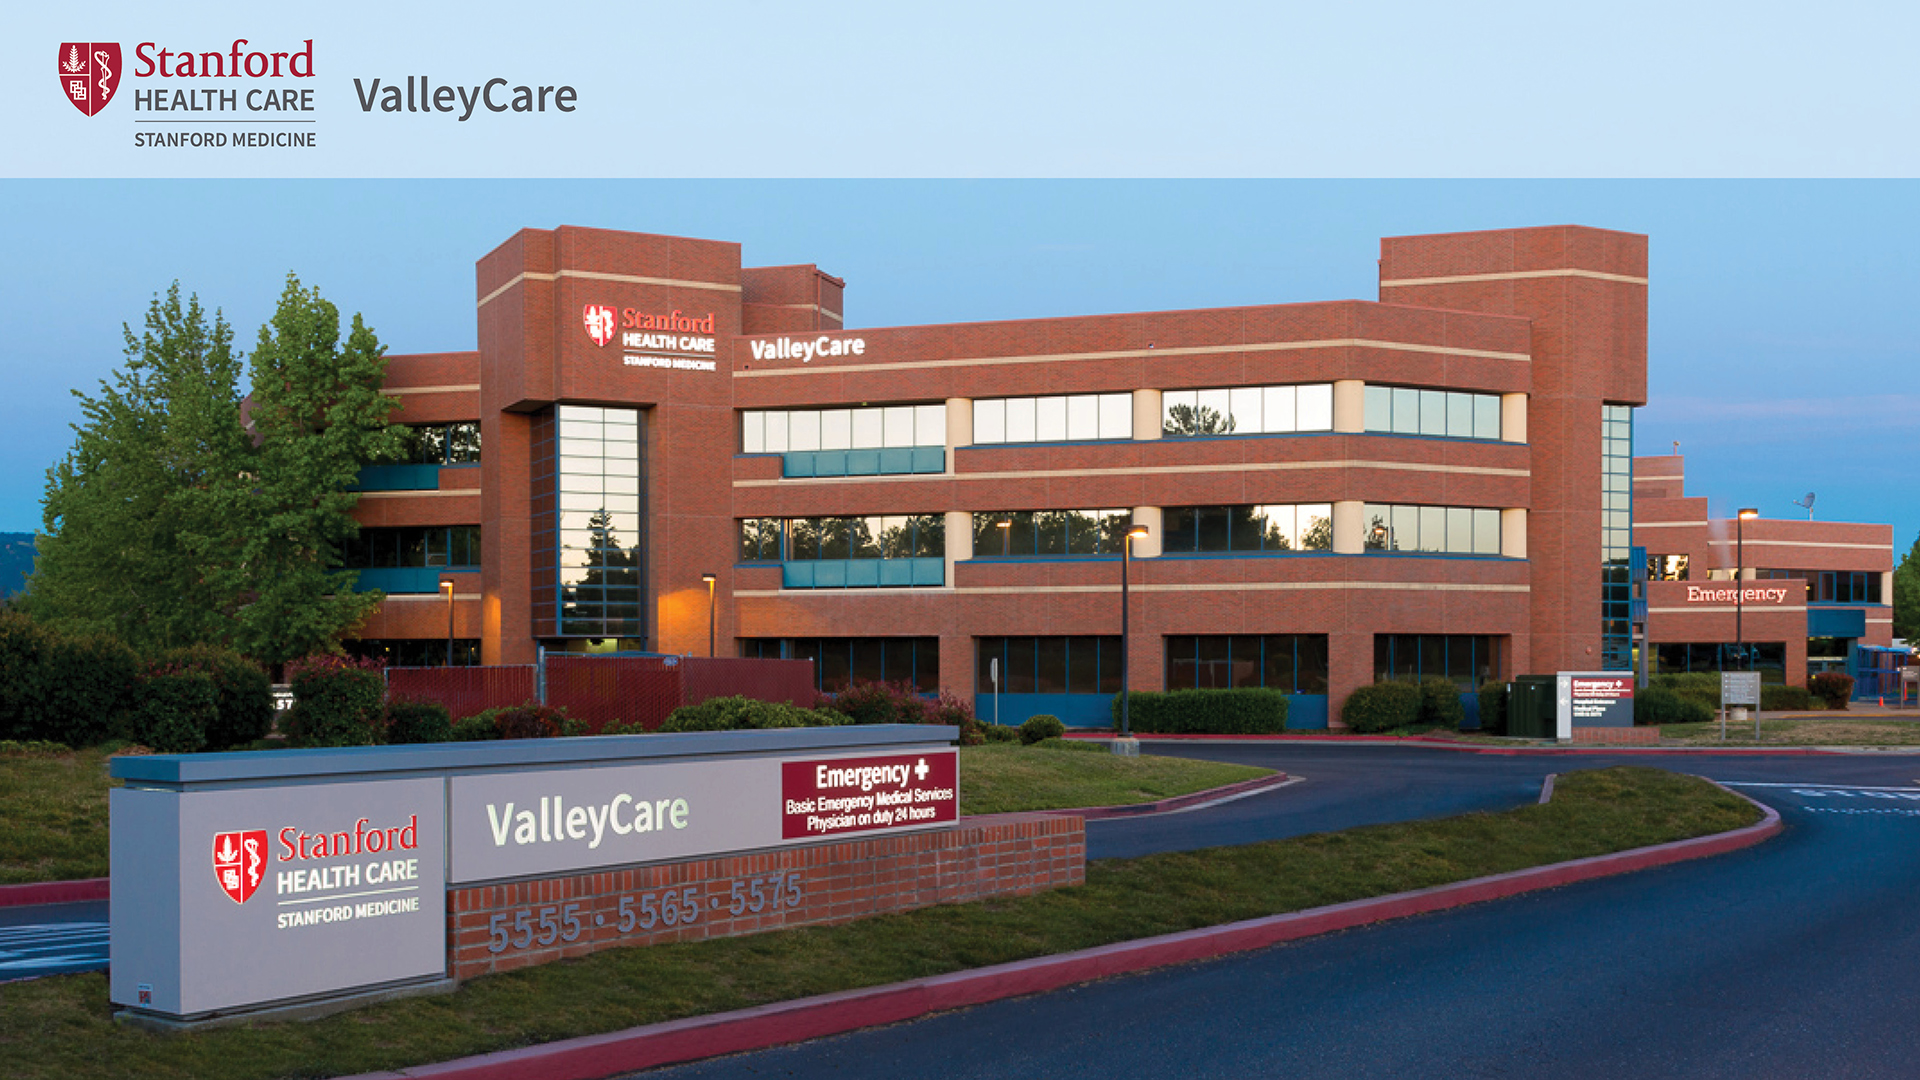 Stanford's ValleyCare facility on the Stanford Health Care campus.